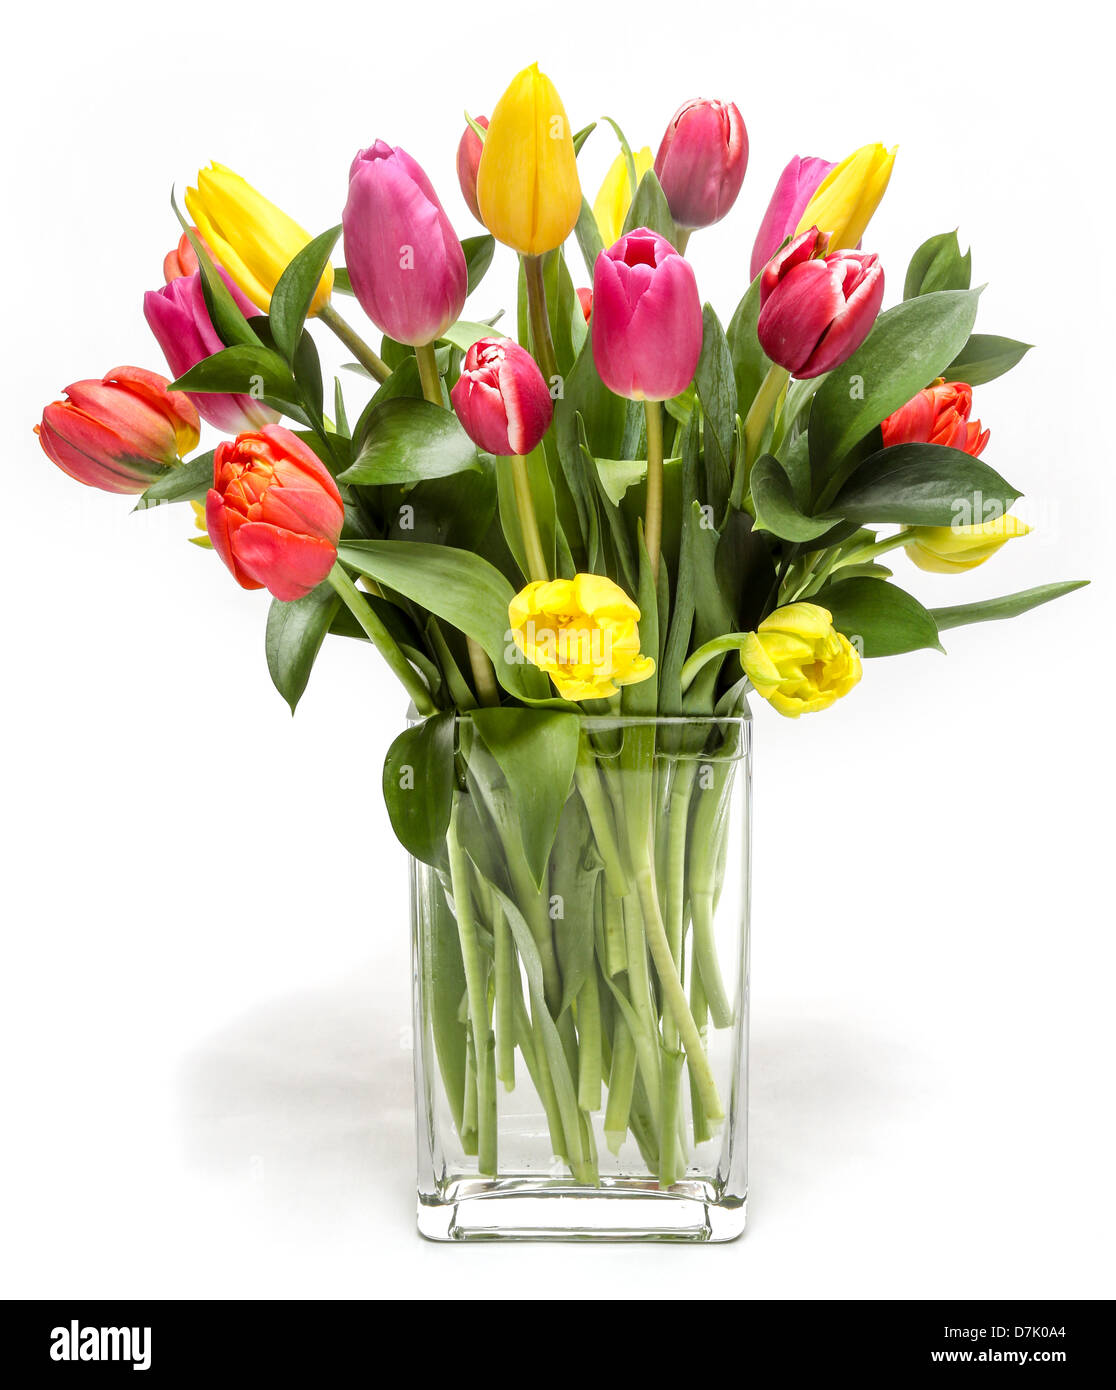 A beautiful flower arrangement of colorful Tulips. Stock Photo